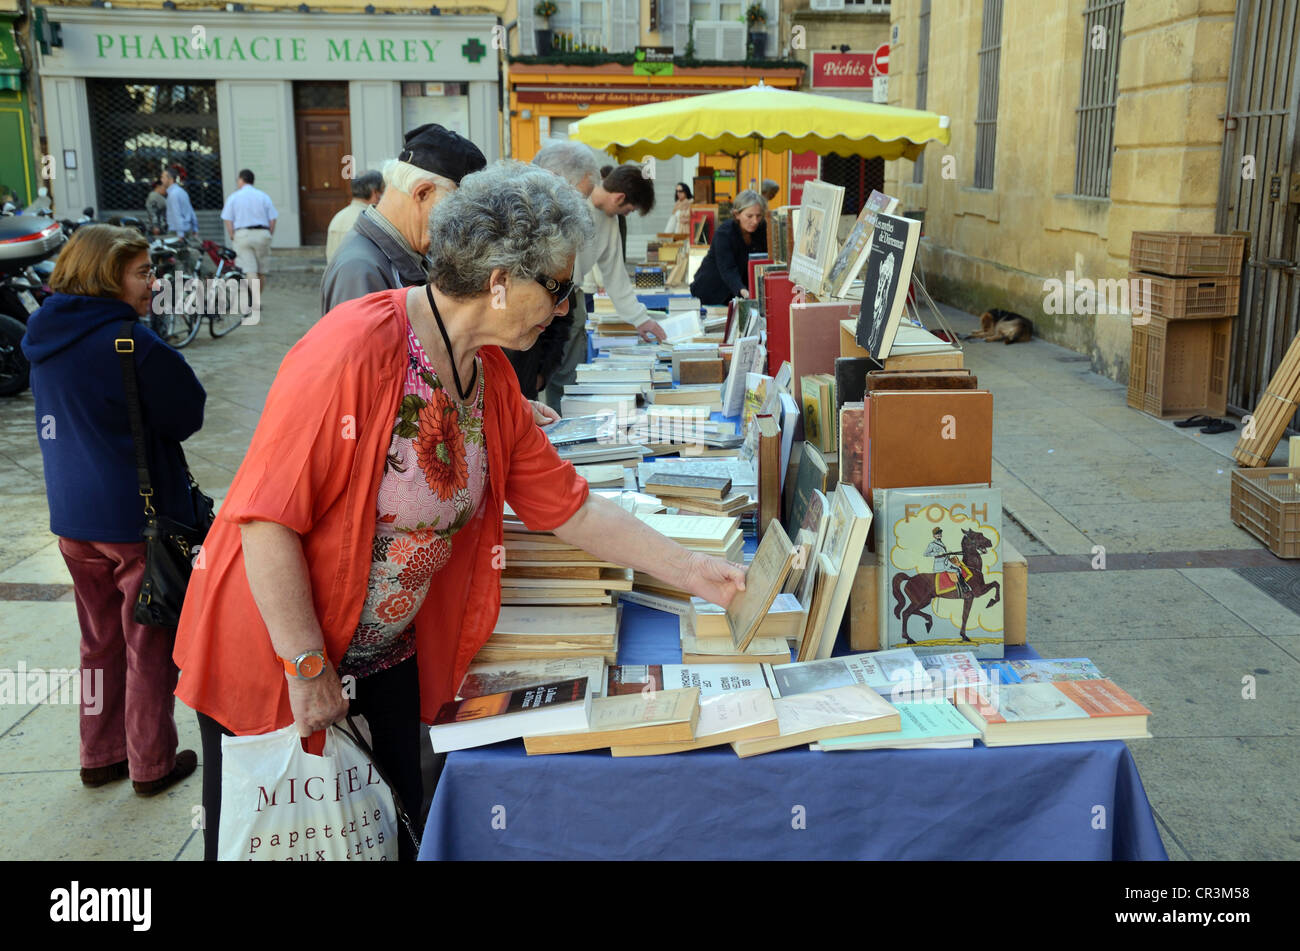 Customer Browsing at Book Fair or Second-Hand Book Stall Aix-en-Provence Provence France - Stock Image